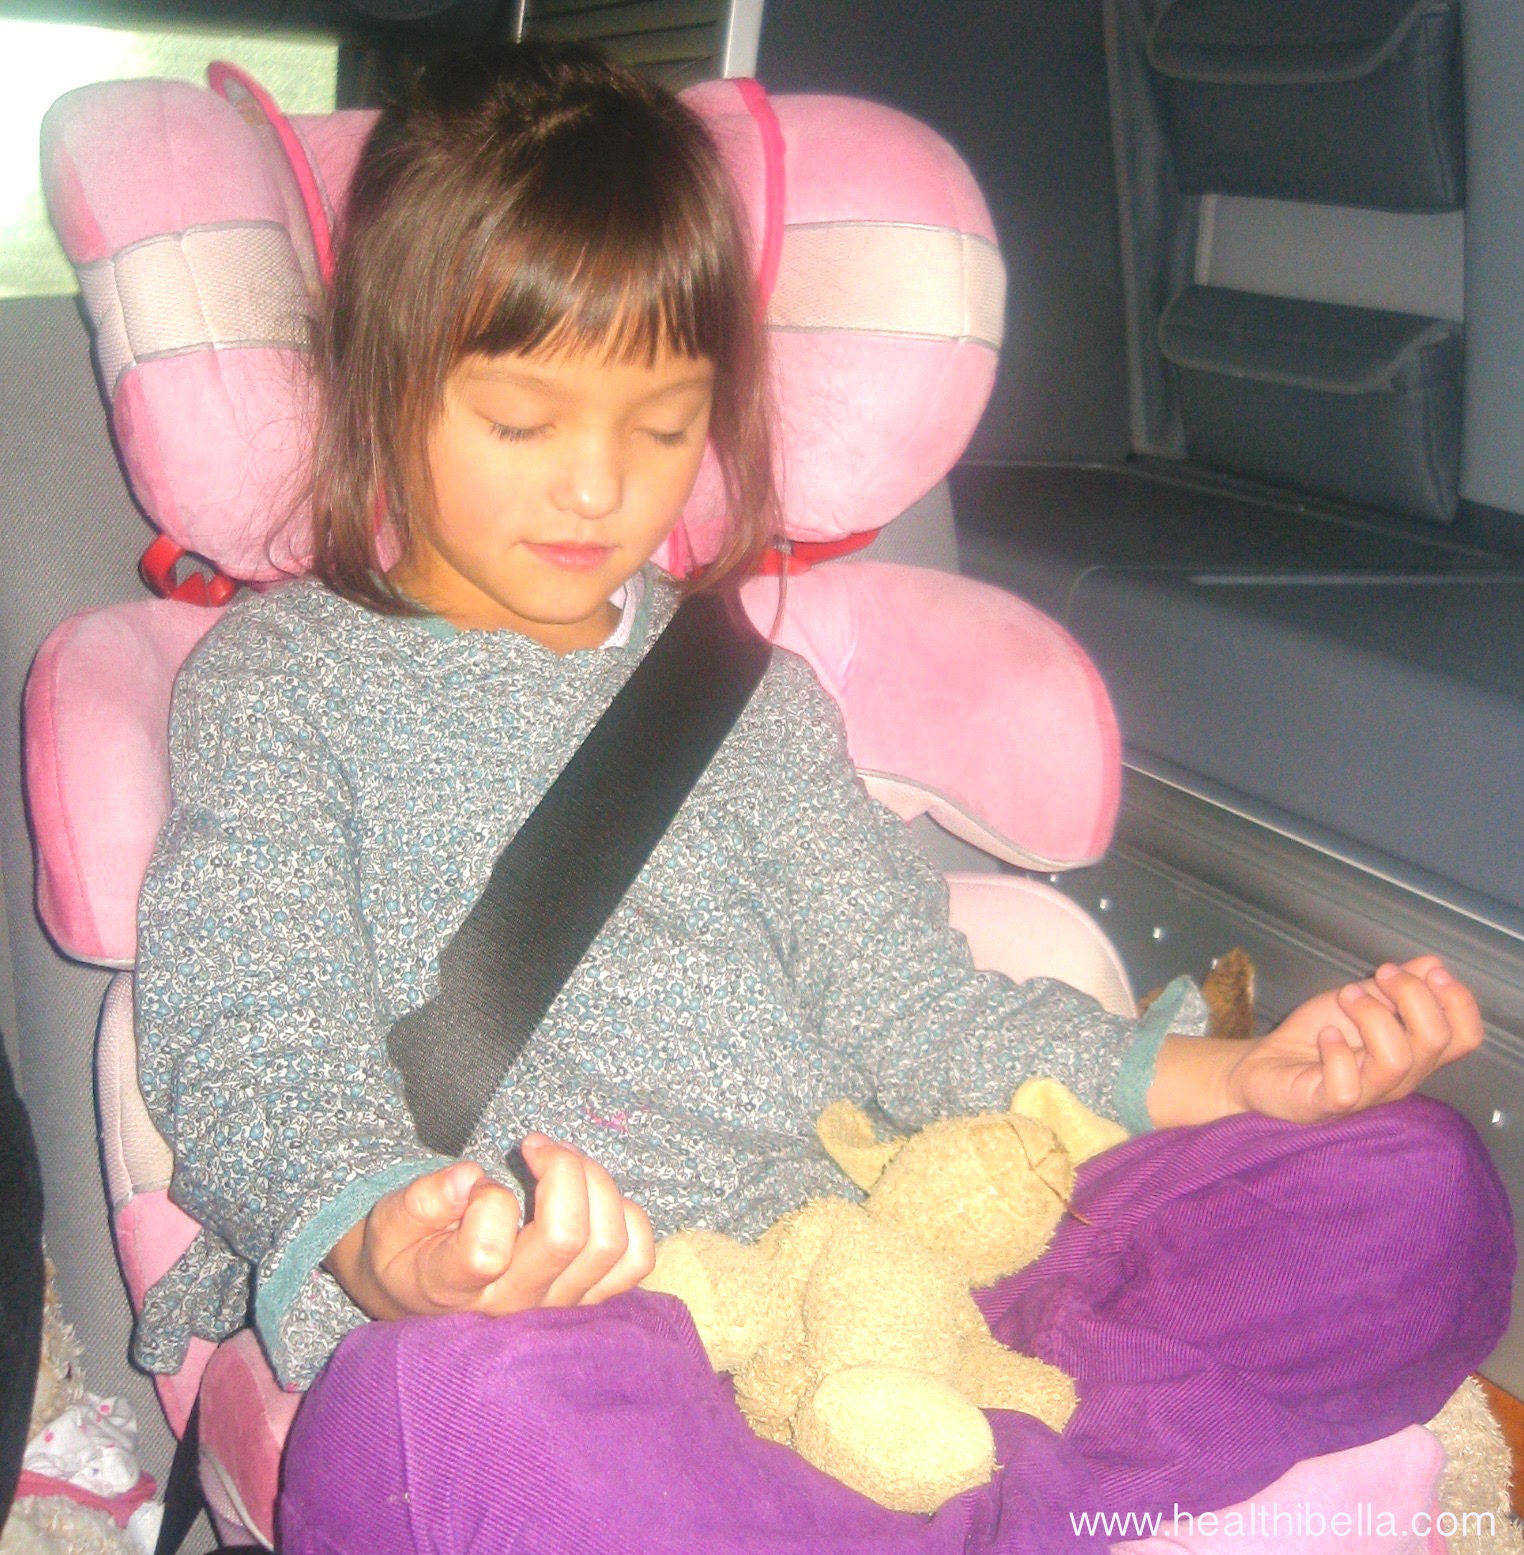 My 5 year old daughter in 2008 copying a meditation pose she learned at our family's ashram.